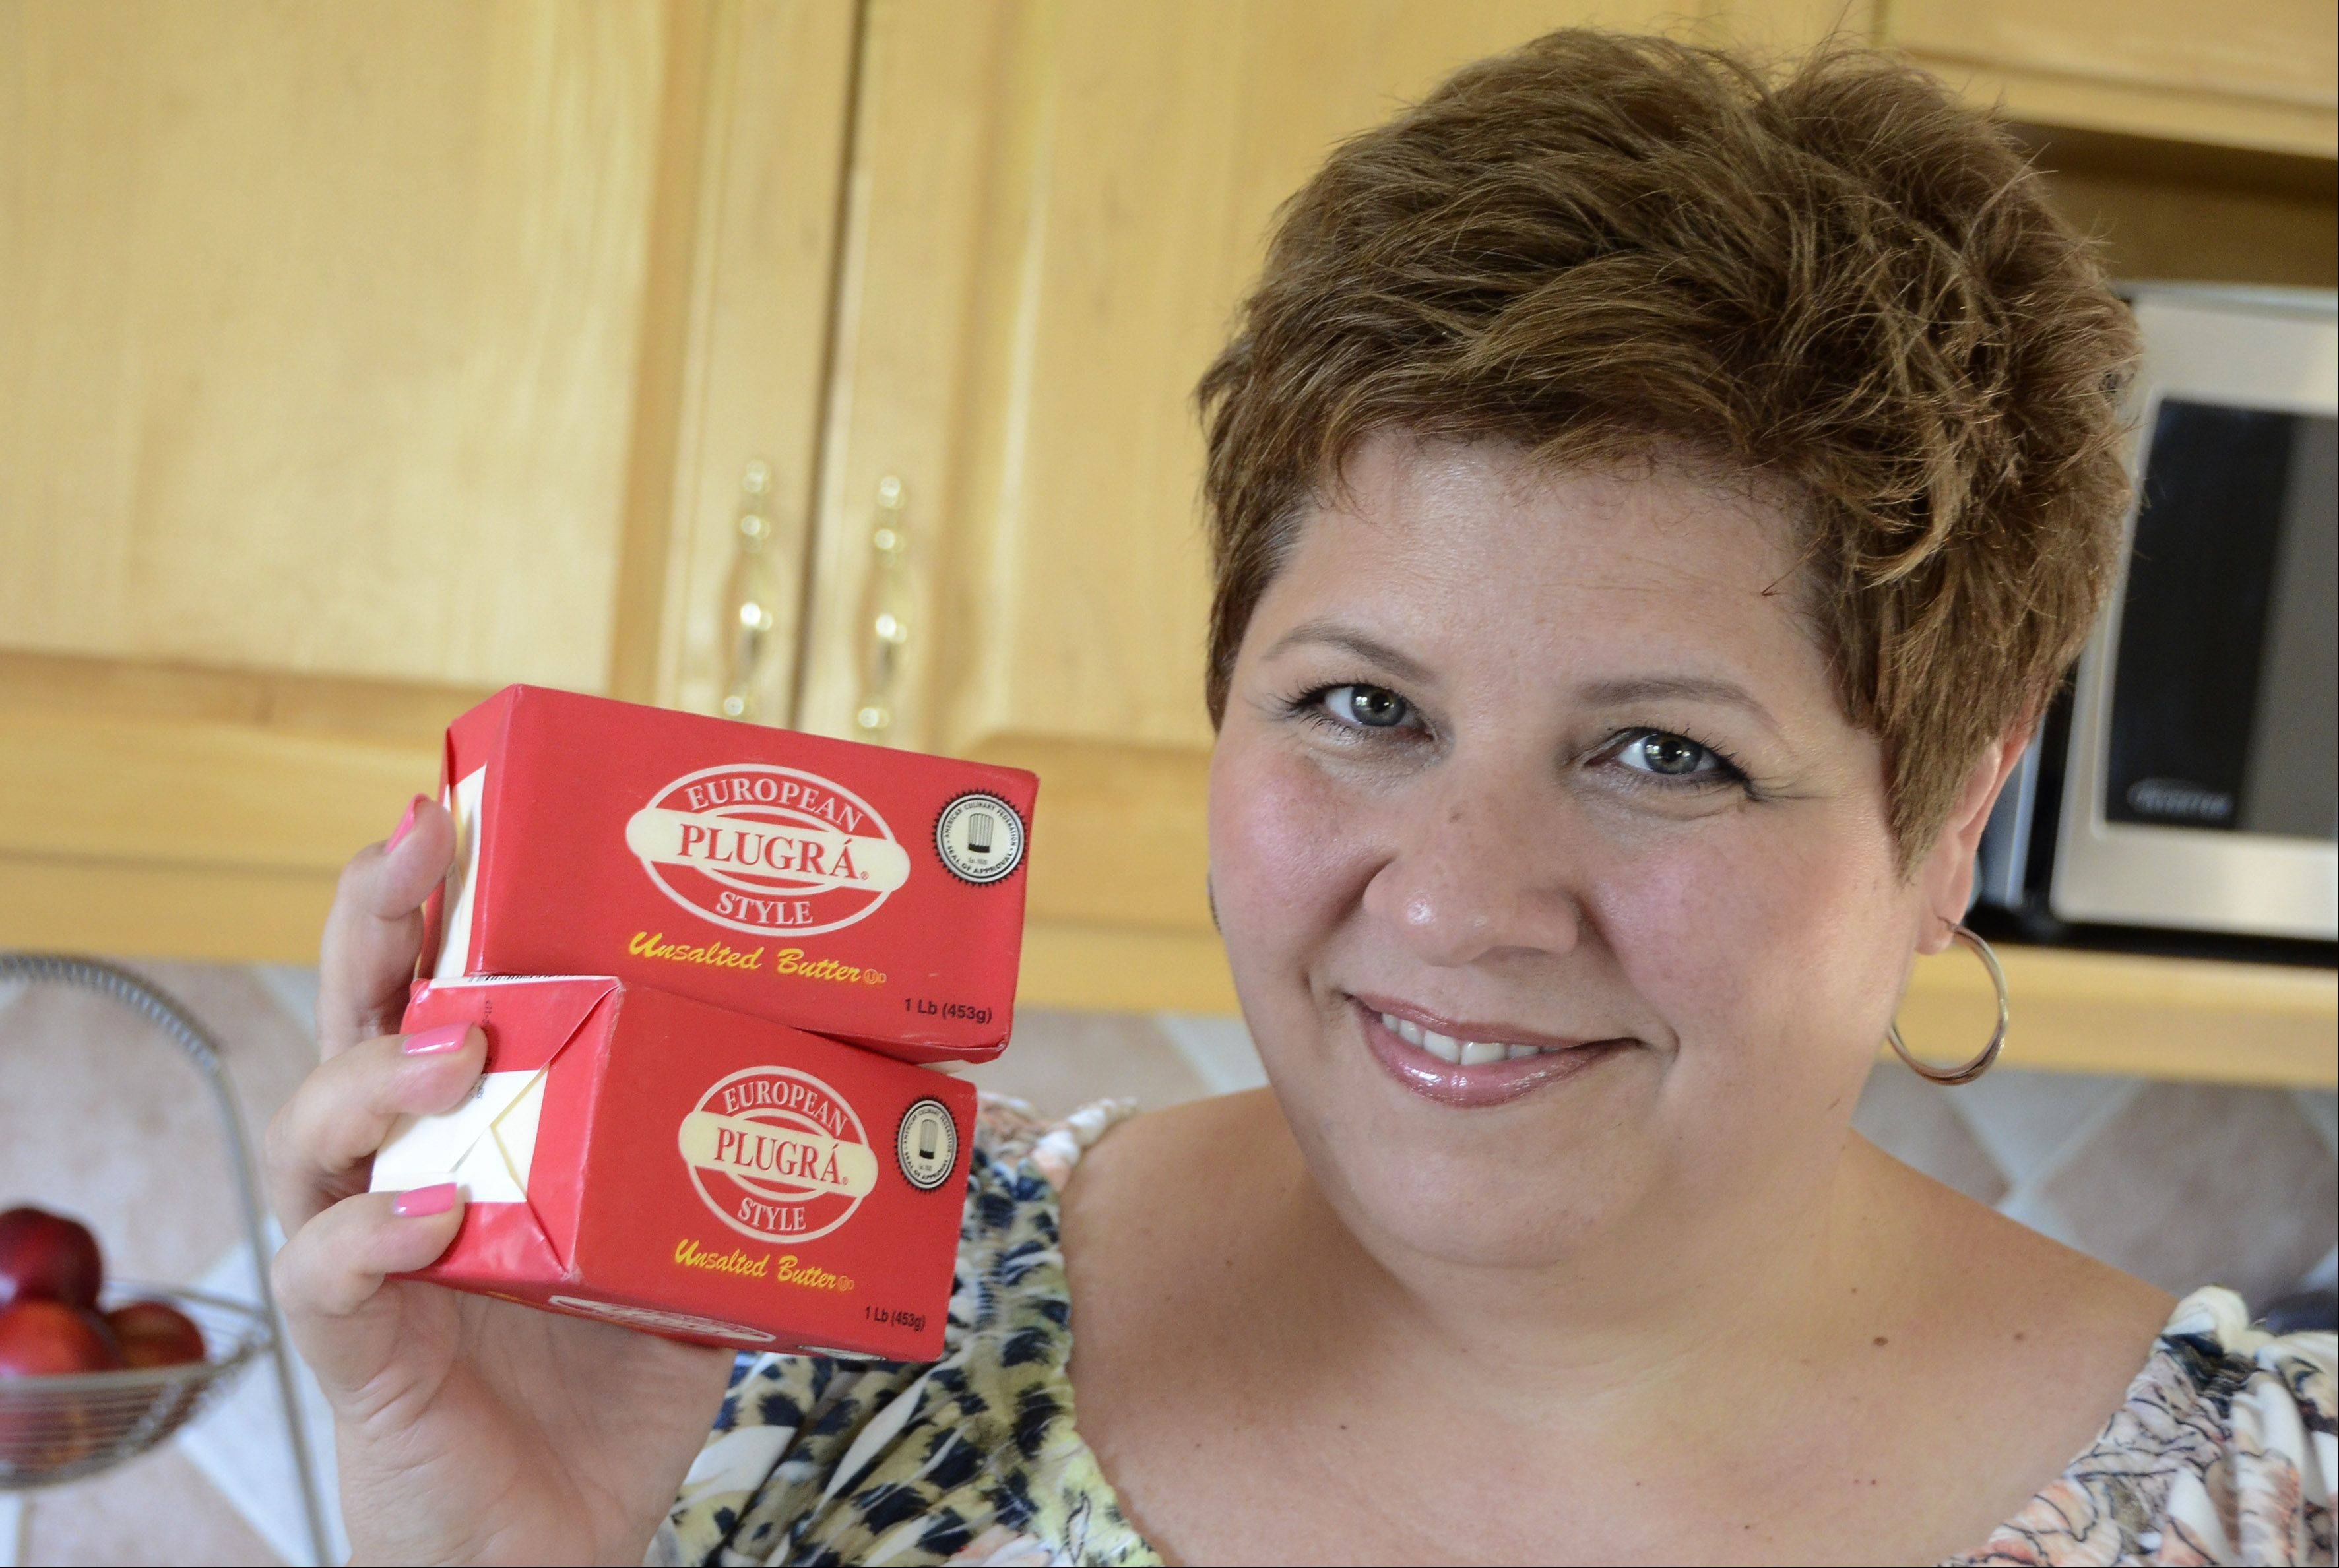 Bill Zars/bzars@dailyherald.comFormer cook of the week contestant Louann Zundel of Des Plaines is now a cook of the year contestant. Her favorite cooking ingredient is butter.